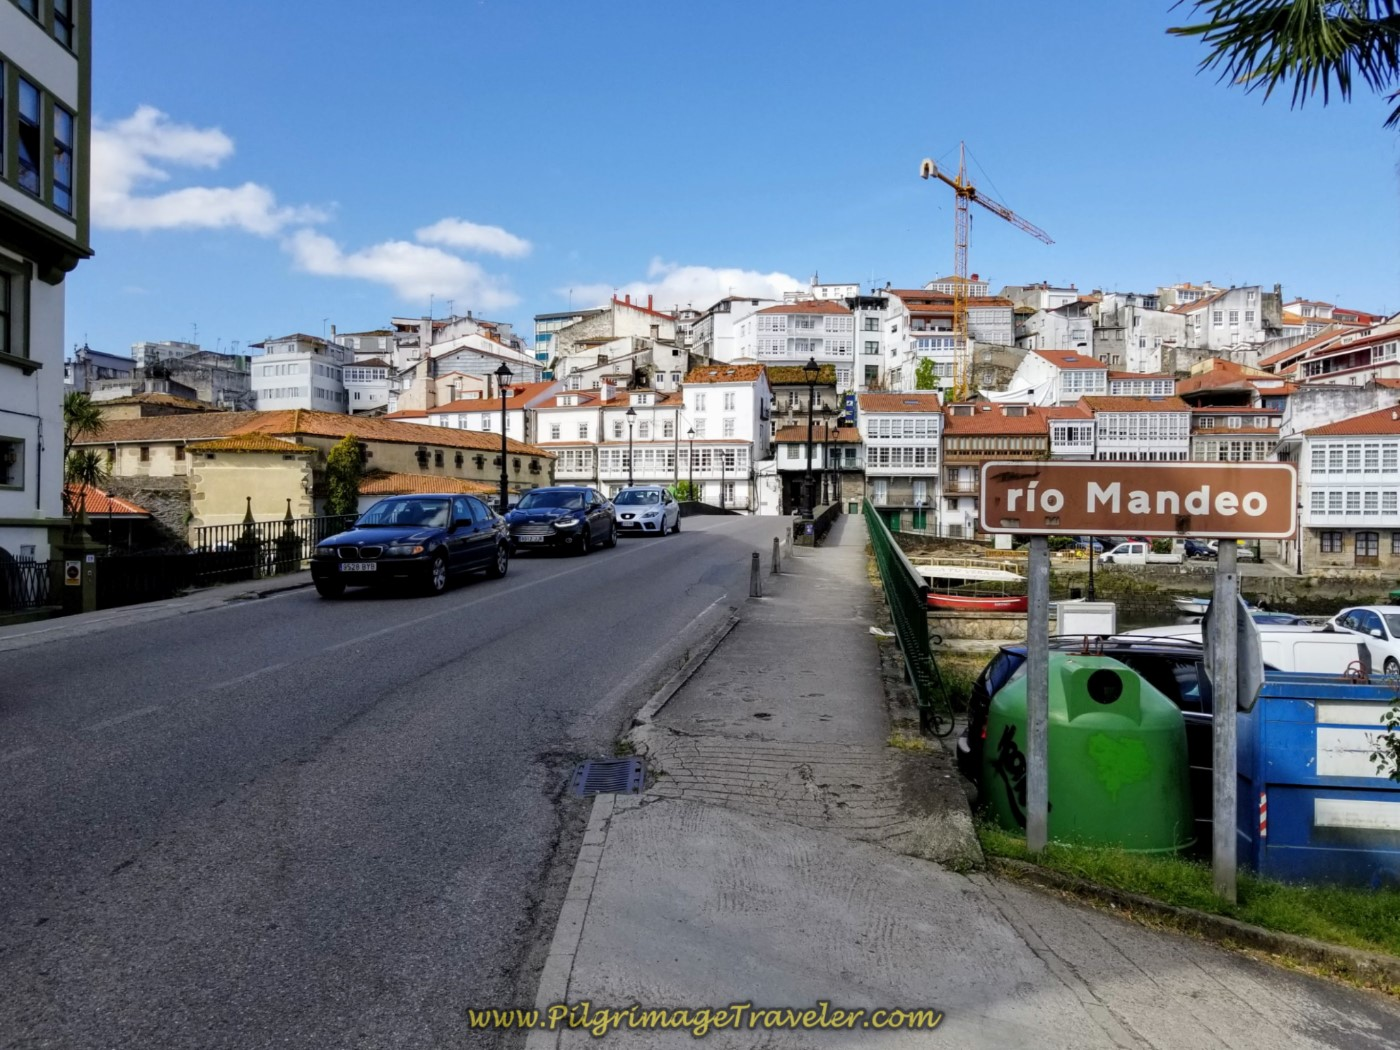 Cross the Río Mandeo into Medieval Betanzos on day four of the English Way